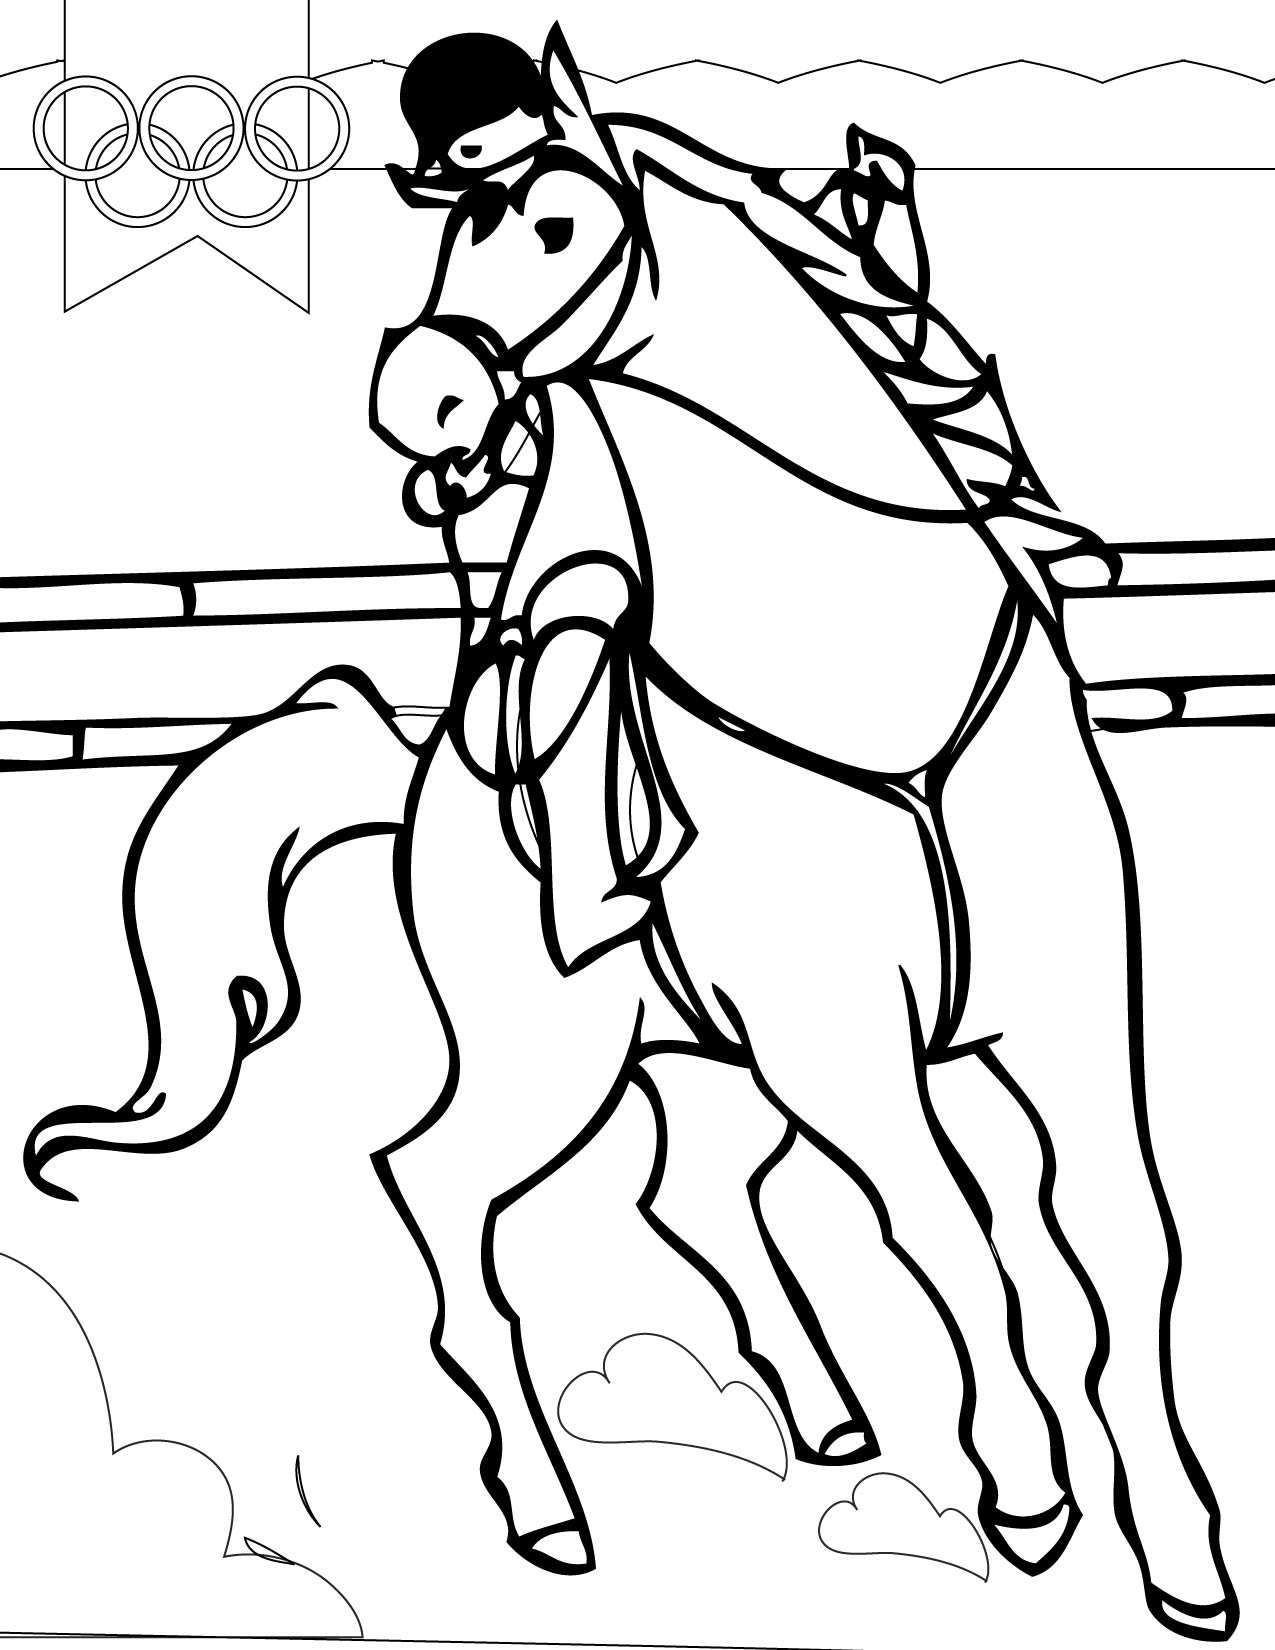 Colouring pages sports - Sports Coloring Pages Coloring Pages Equestrian